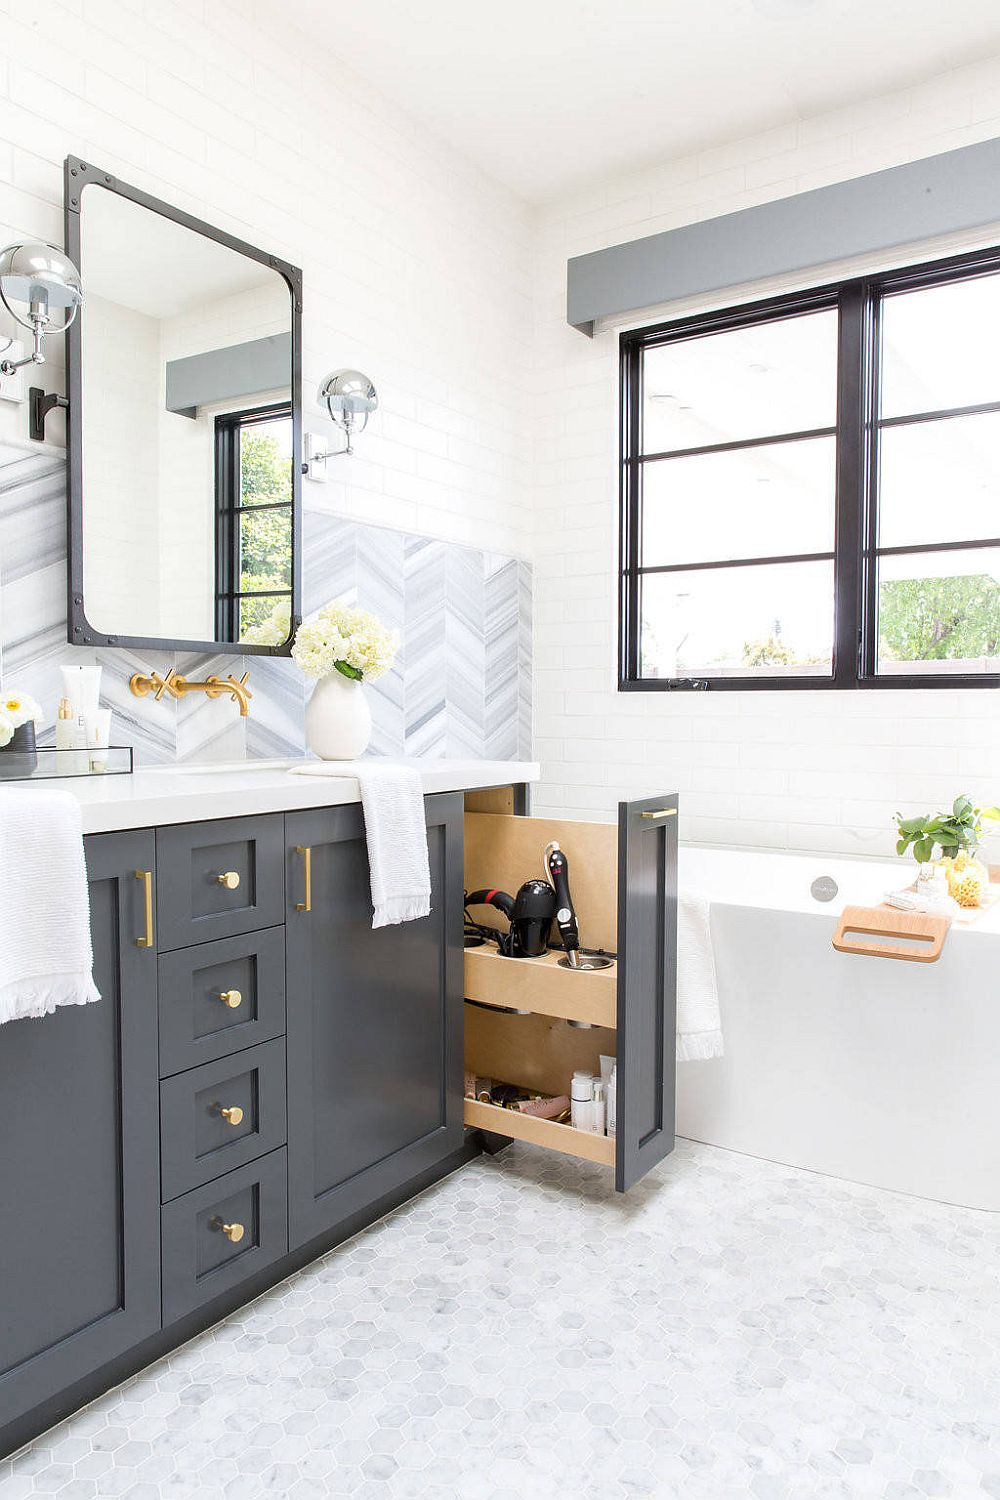 Polished industrial-farmhouse bathroom in white with gray cabinets and ample natural light